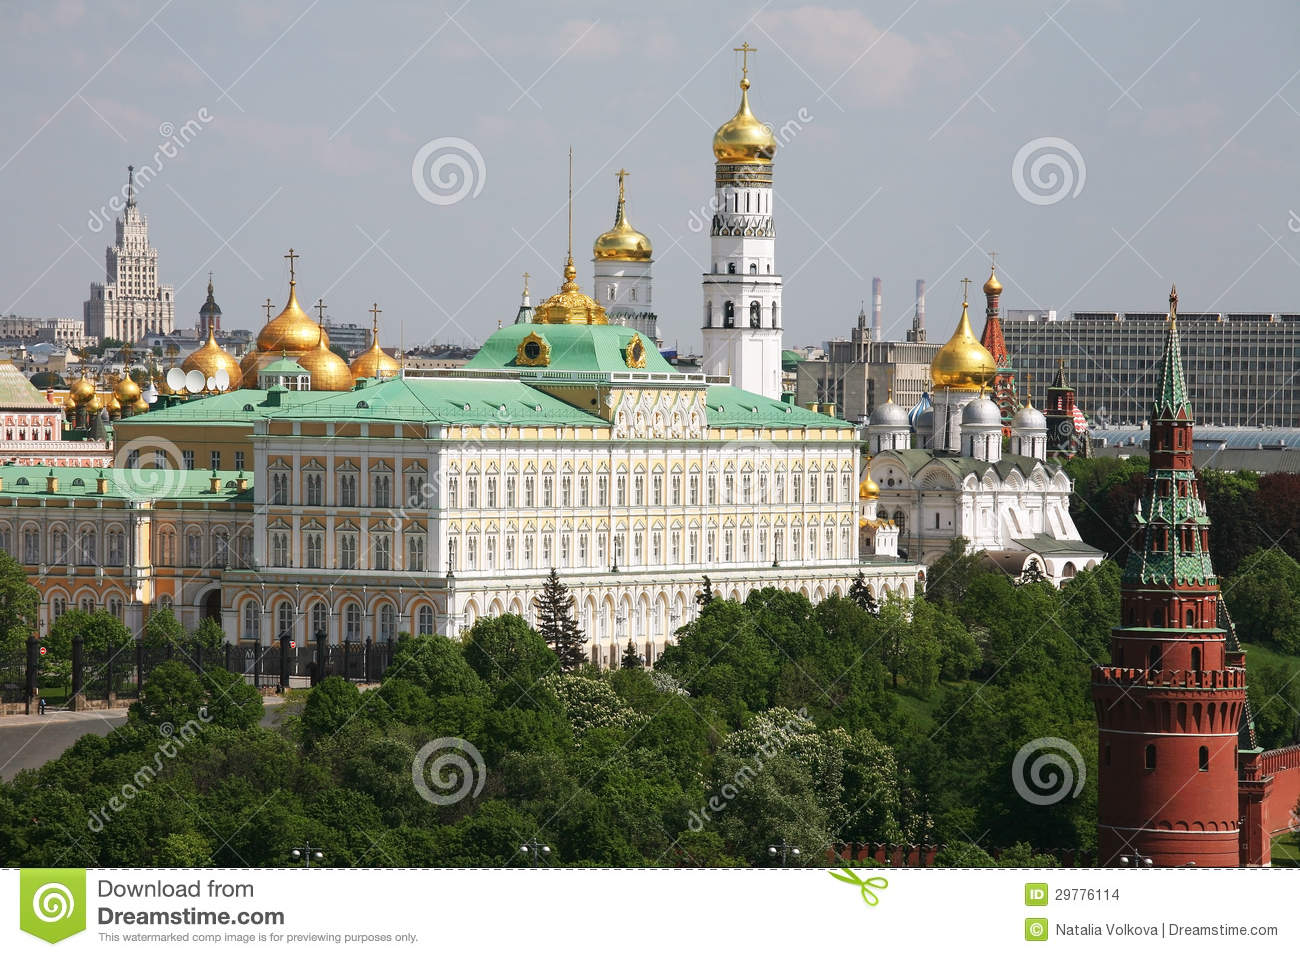 The Moscow Kremlin architectural ensemble: description, history and interesting facts 17